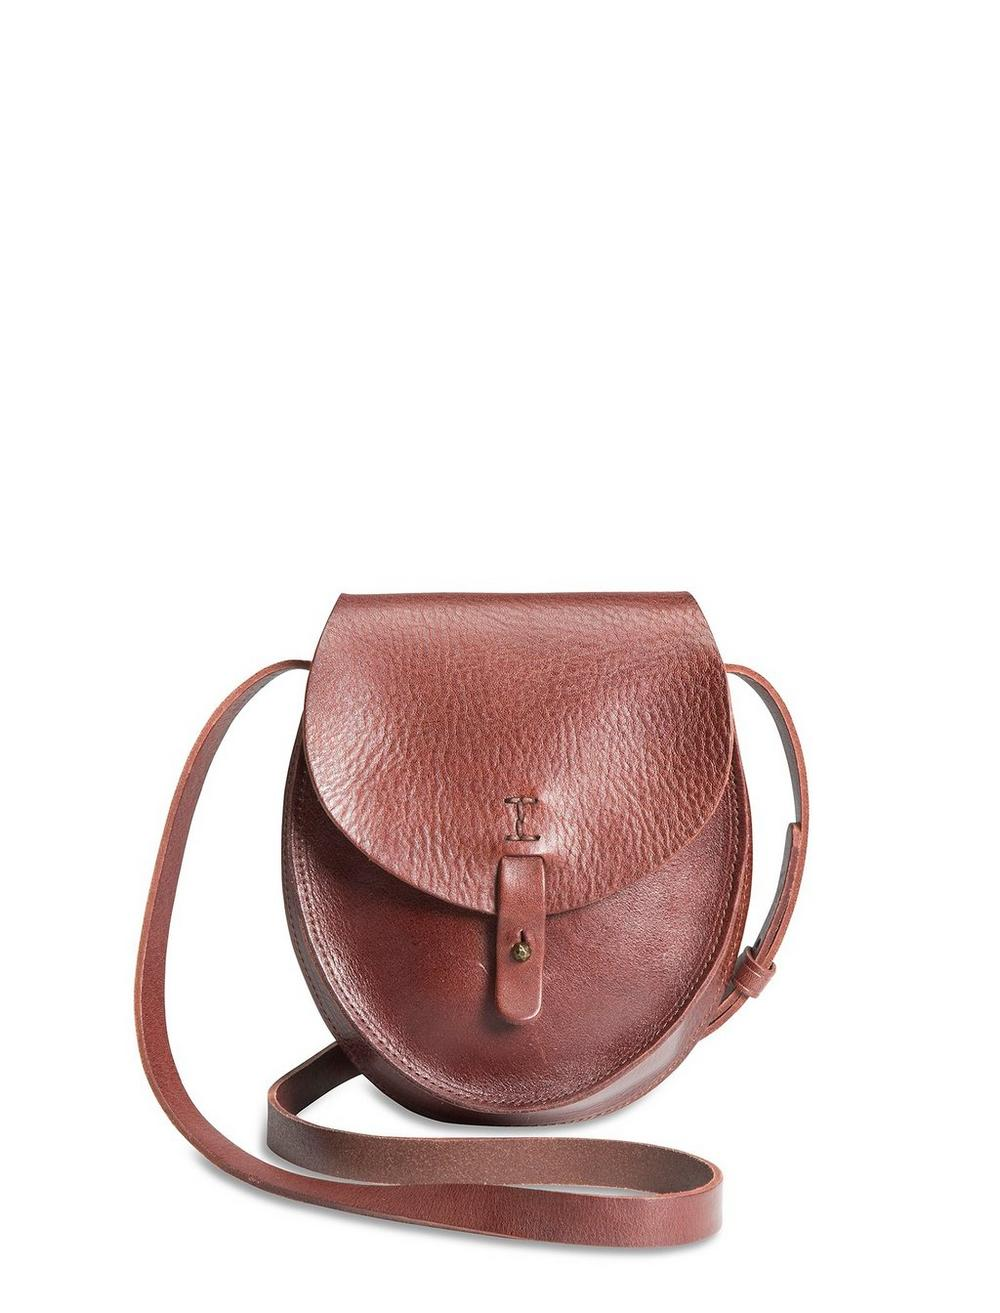 THE POINT FLAP CROSSBODY, image 1